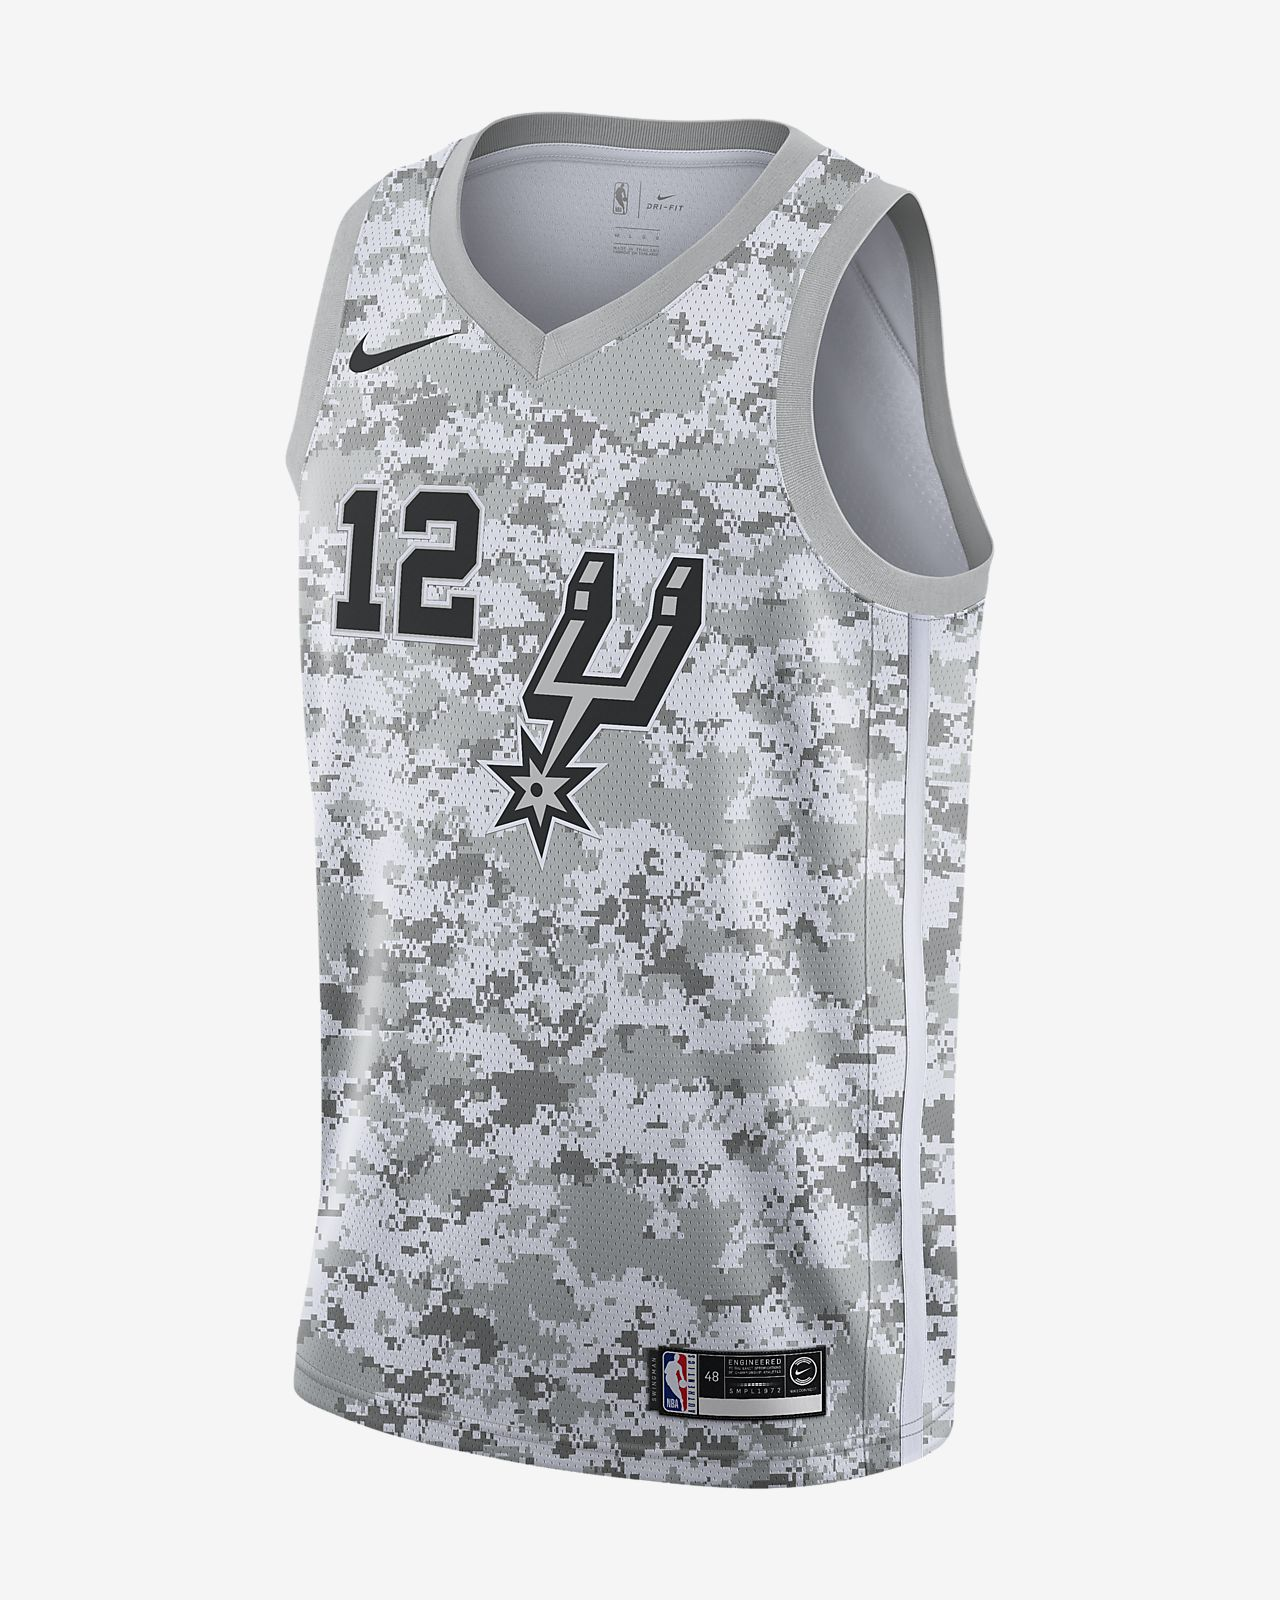 3c5c99d14ed Men s Nike NBA Connected Jersey. LaMarcus Aldridge Earned City Edition  Swingman (San Antonio Spurs)